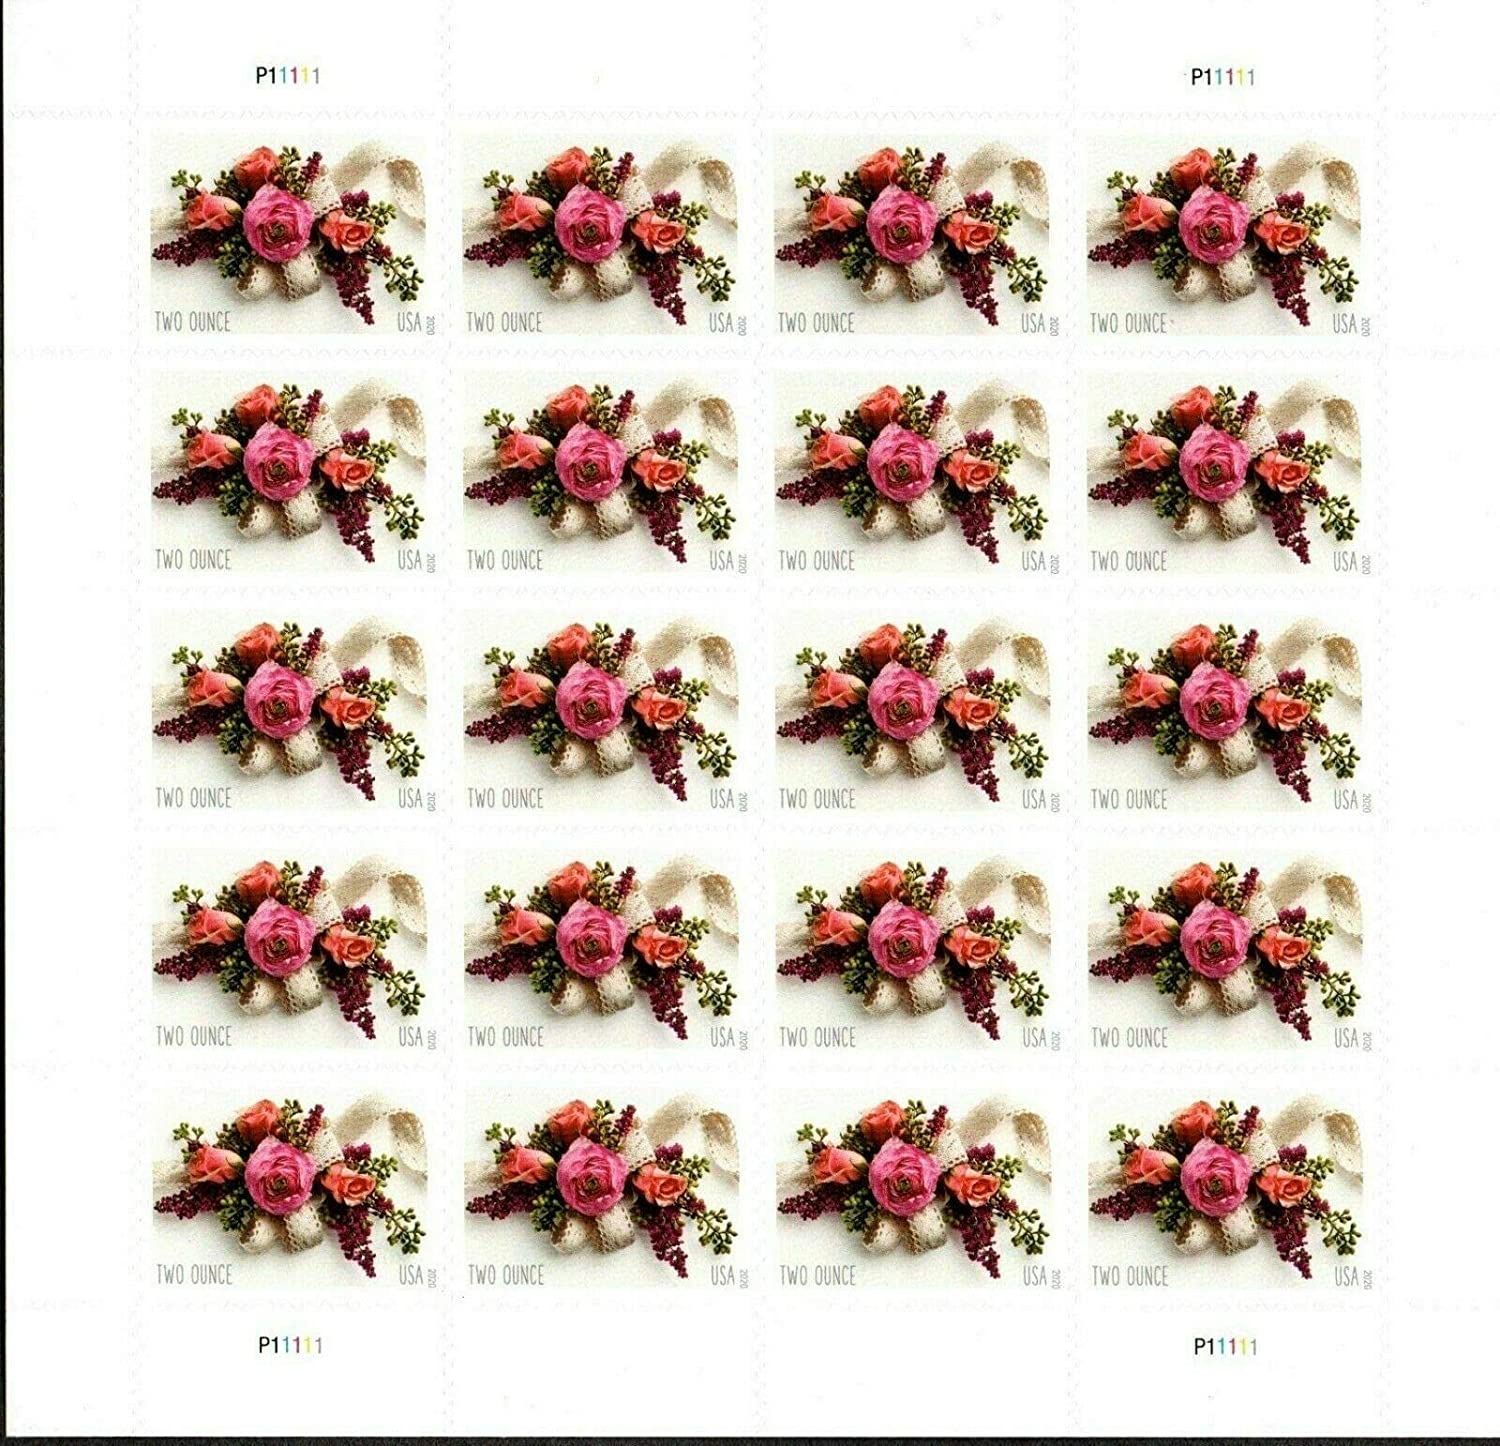 Garden Corsage Wedding Invitations Mint Sheet of 20 Two Ounce Rate Postage Stamps Scott 5458